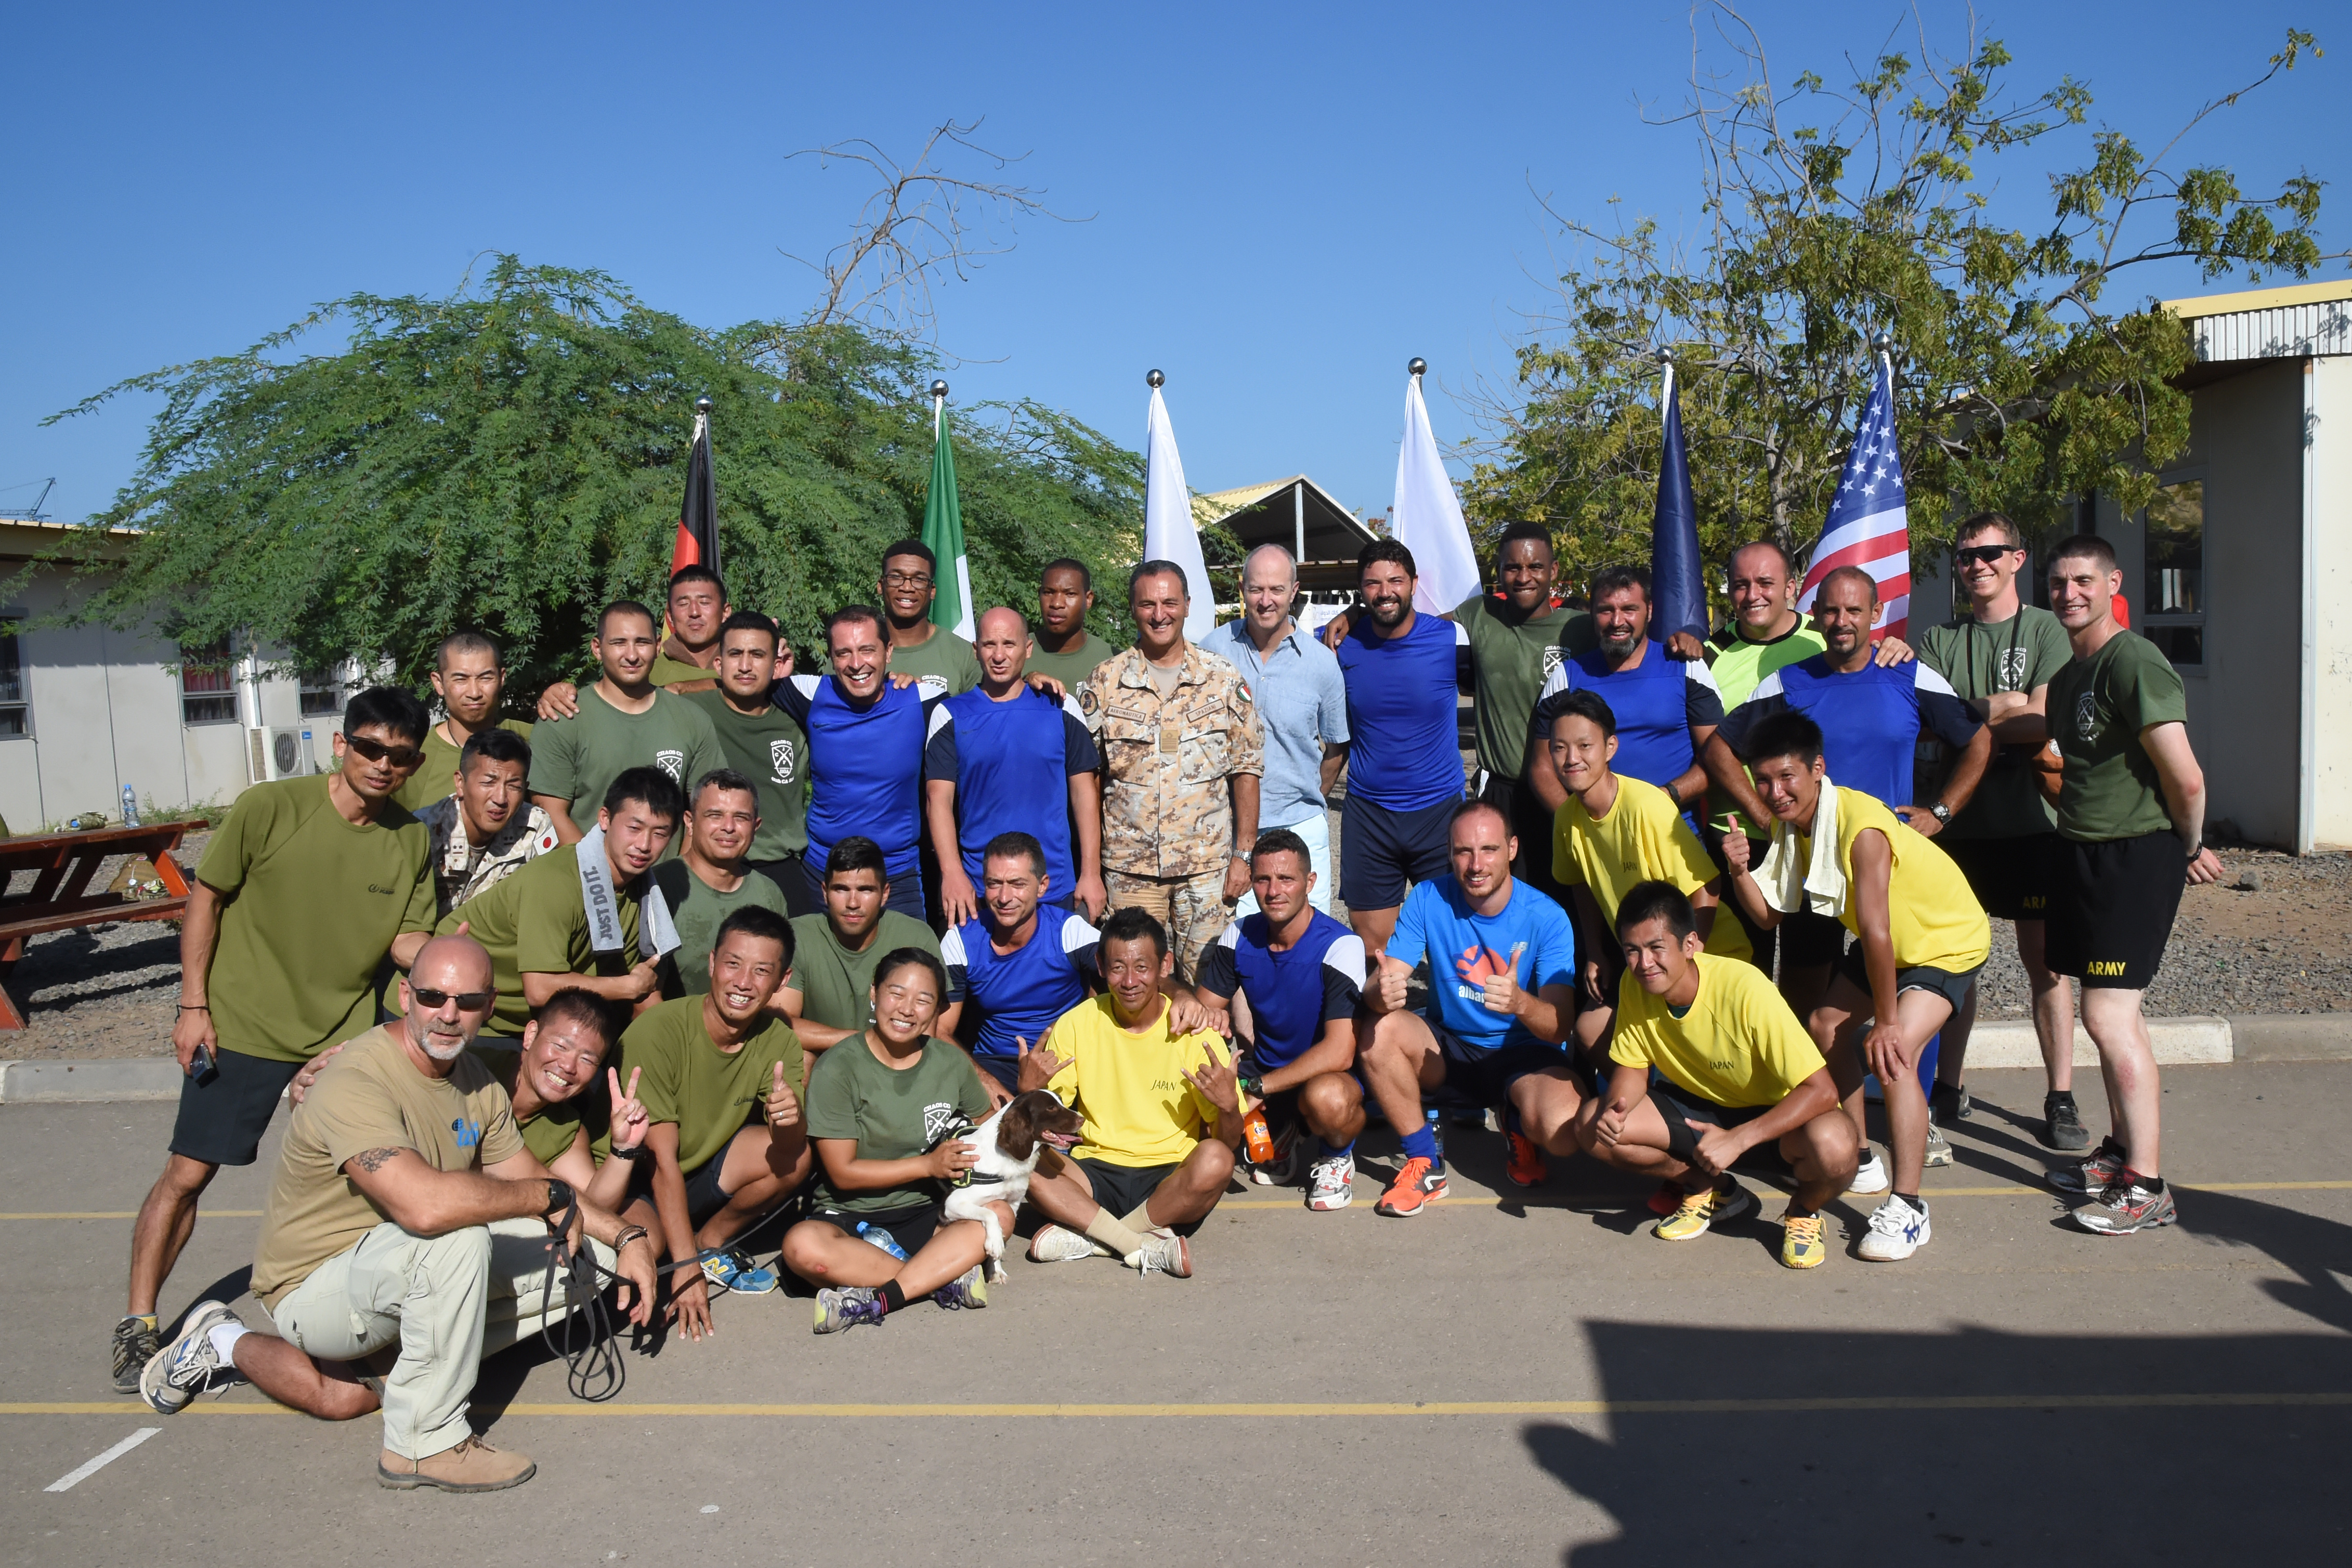 Soccer players representing military units from Italy, Japan and the U.S. are joined by U.S. Ambassador to Djibouti Tom Kelly during a tournament at the French school Kessel in downtown Djibouti Dec. 9, 2016. The event brought together eleven different teams from six countries for friendly competition in support of the Kick for Nick Foundation. (U.S. Air National Guard photo by Master Sgt. Paul Gorman)